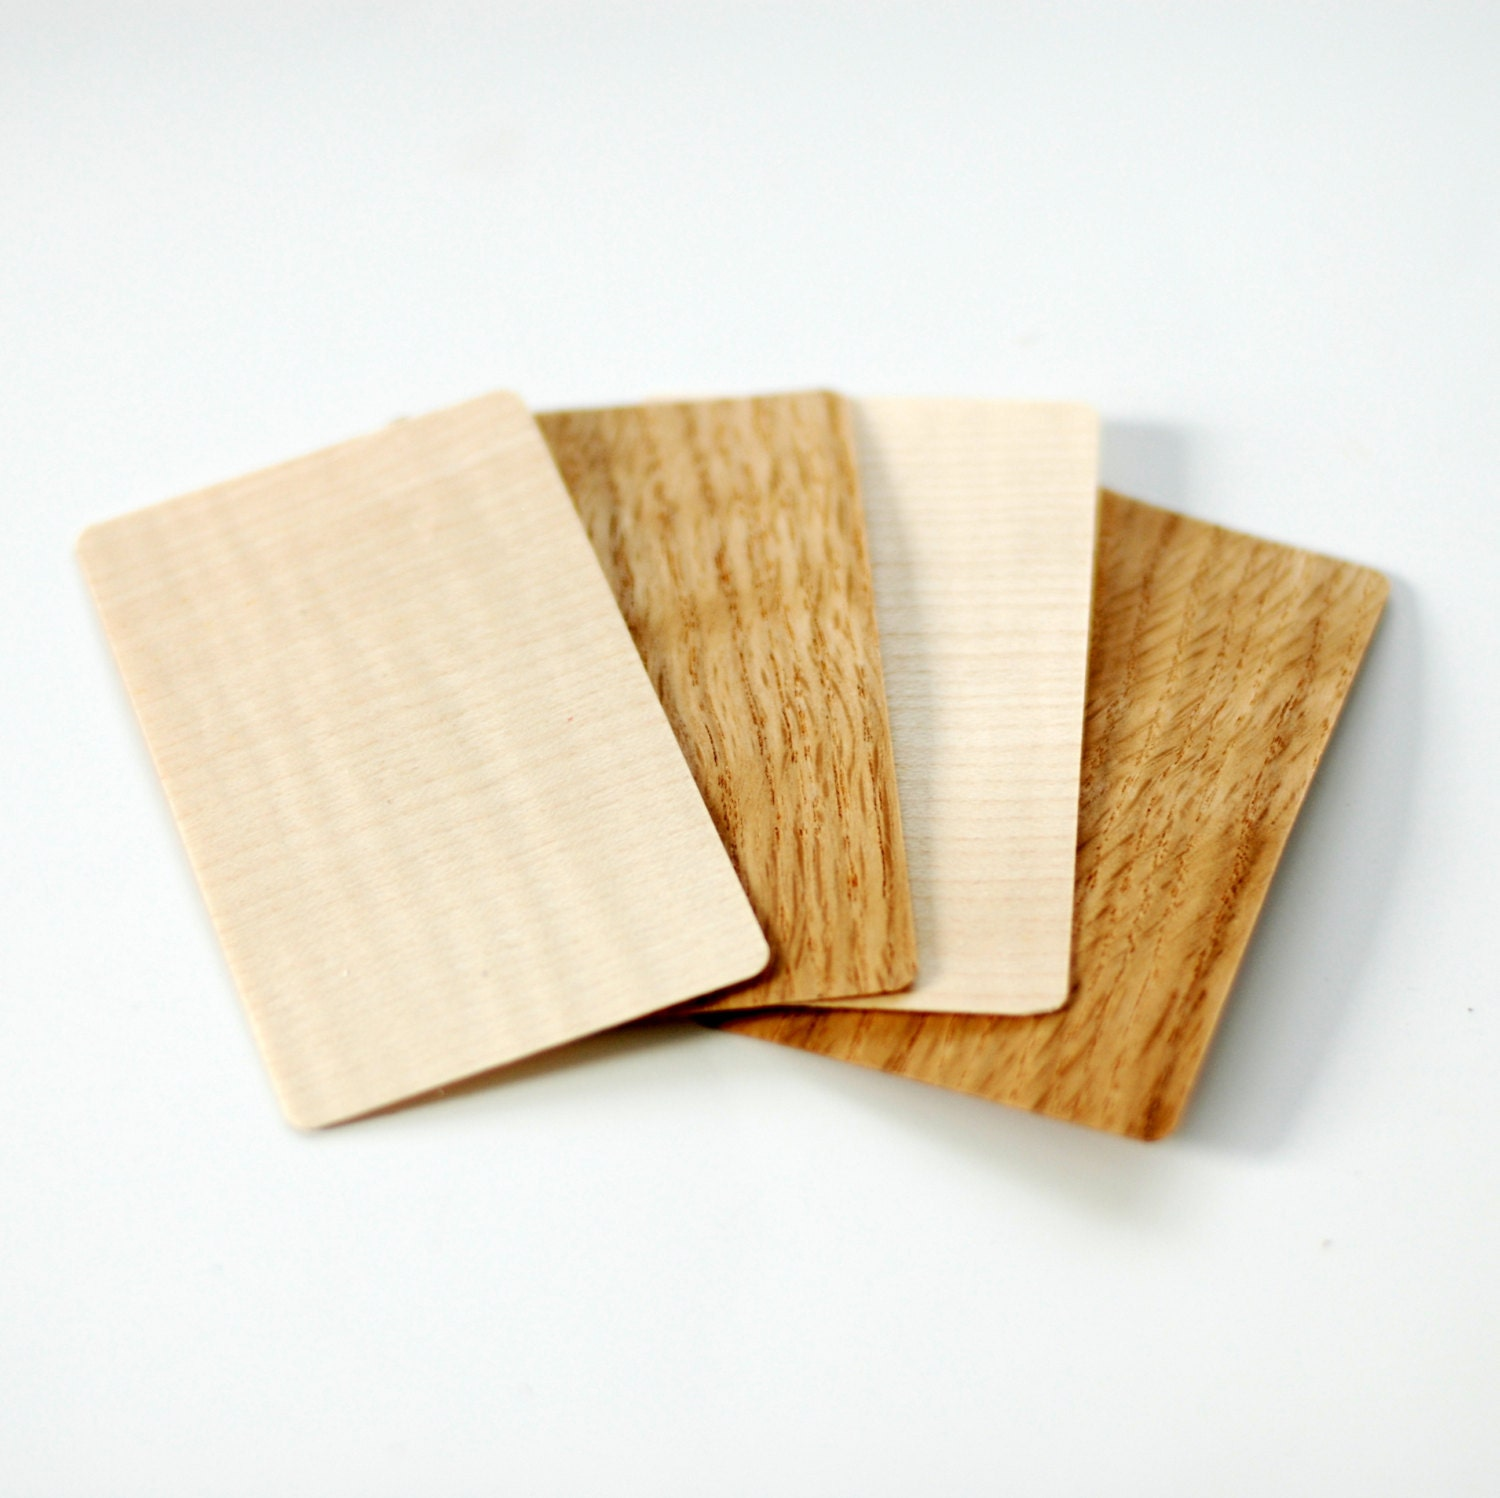 Wood business cards yelomphonecompany wood business cards reheart Choice Image